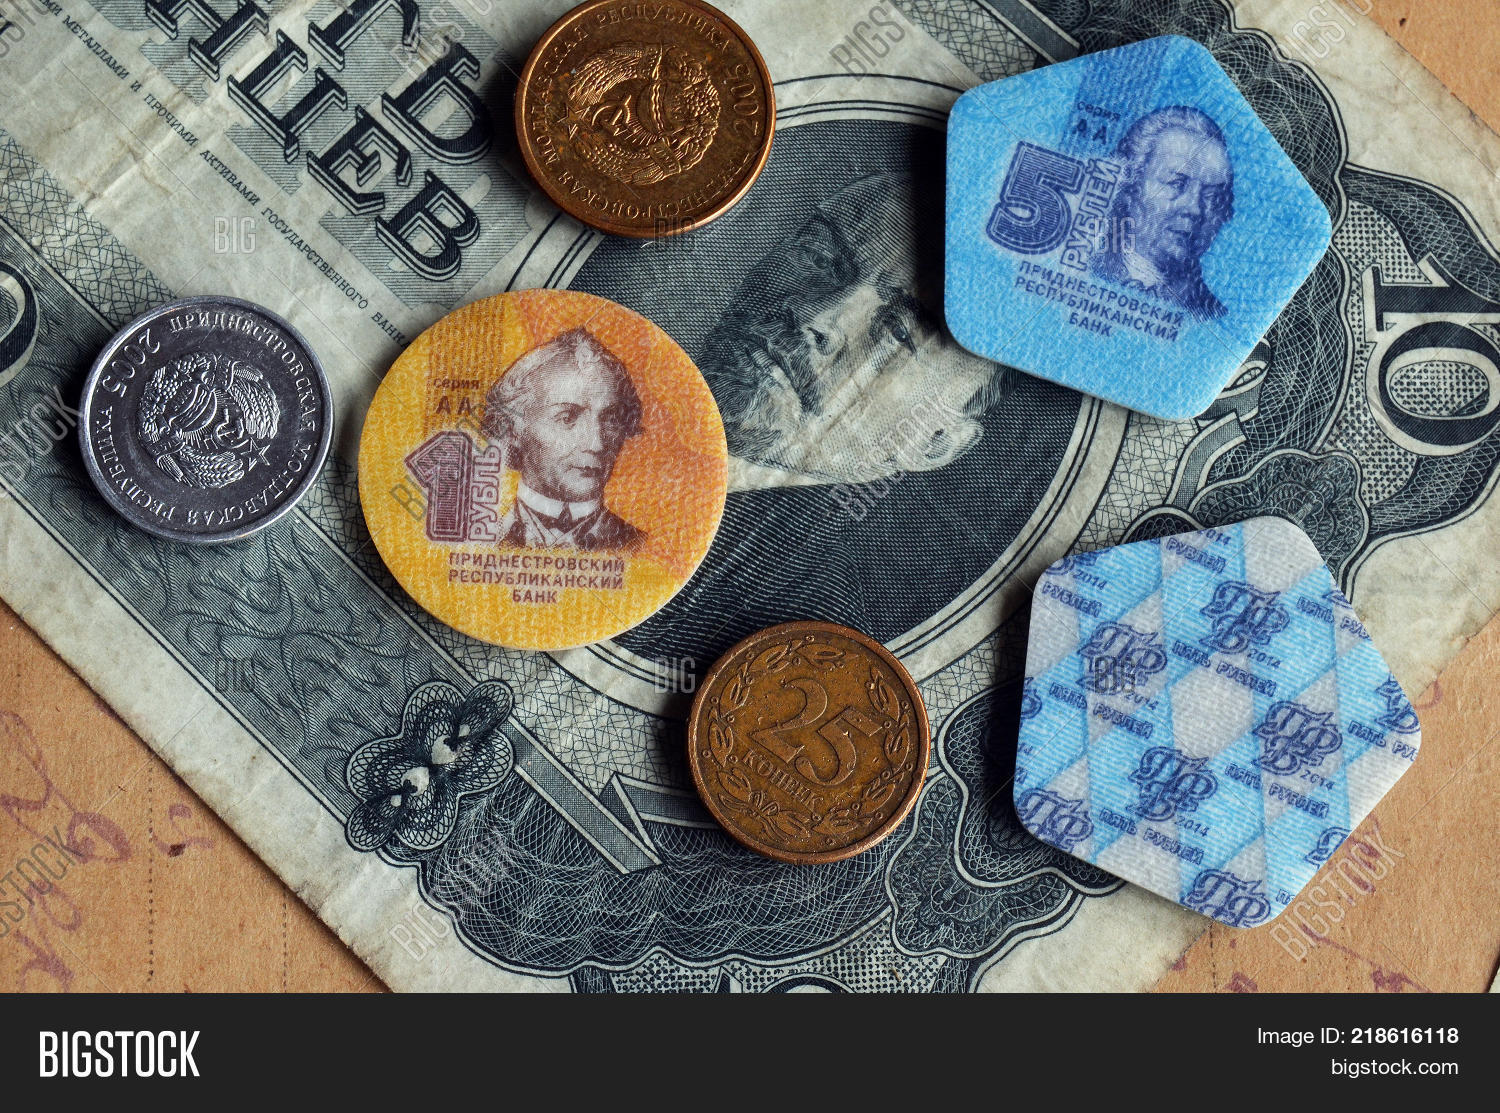 Banknotes and coins of Transnistria. Interesting facts about the currency of the PMR 94